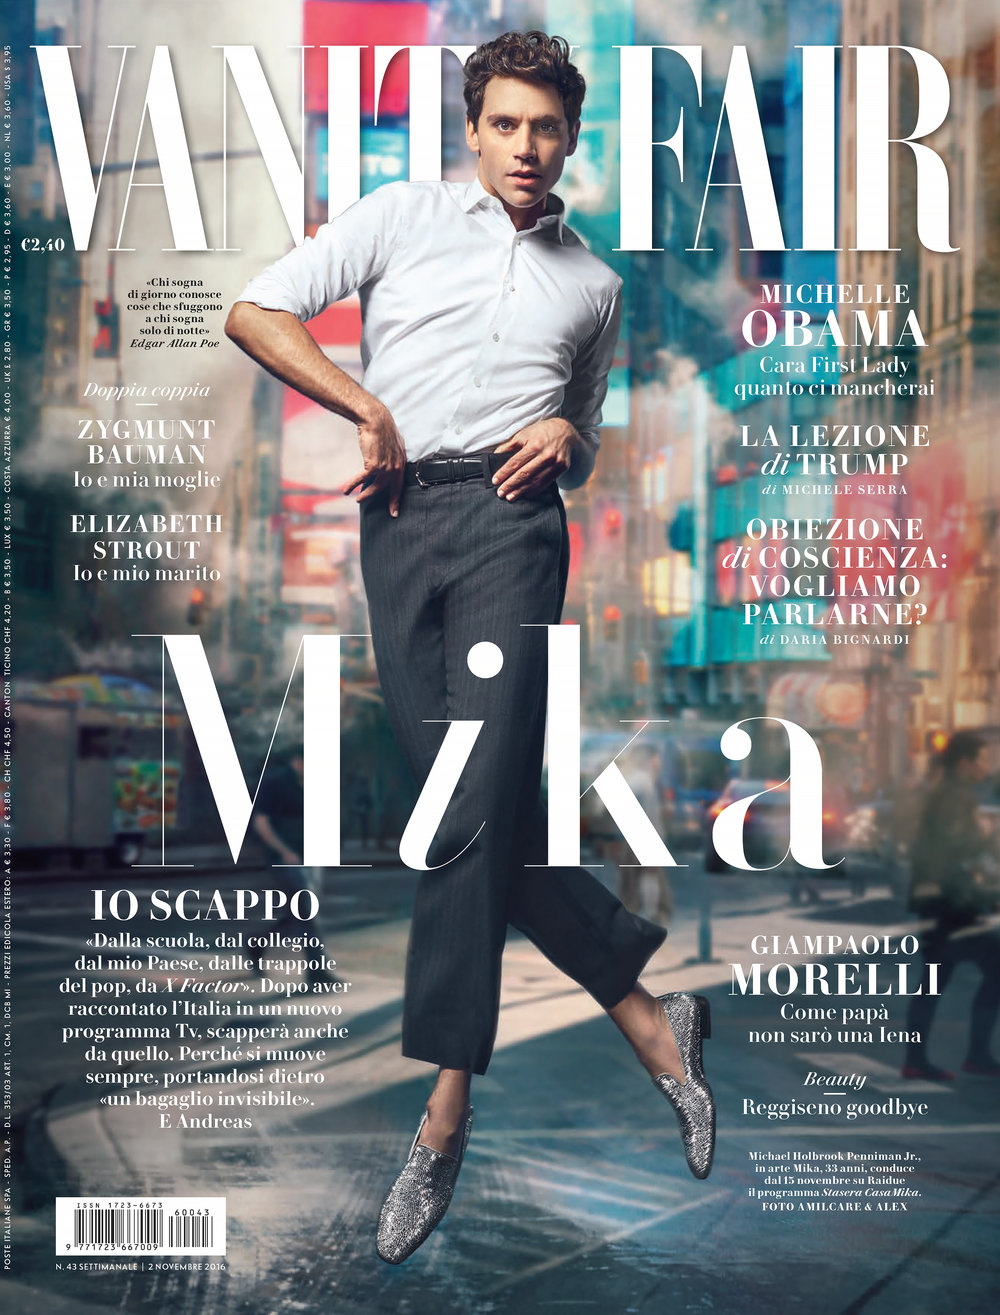 MIKA: VANITY FAIR ITALY COVER STORY, OCTOBER 2016